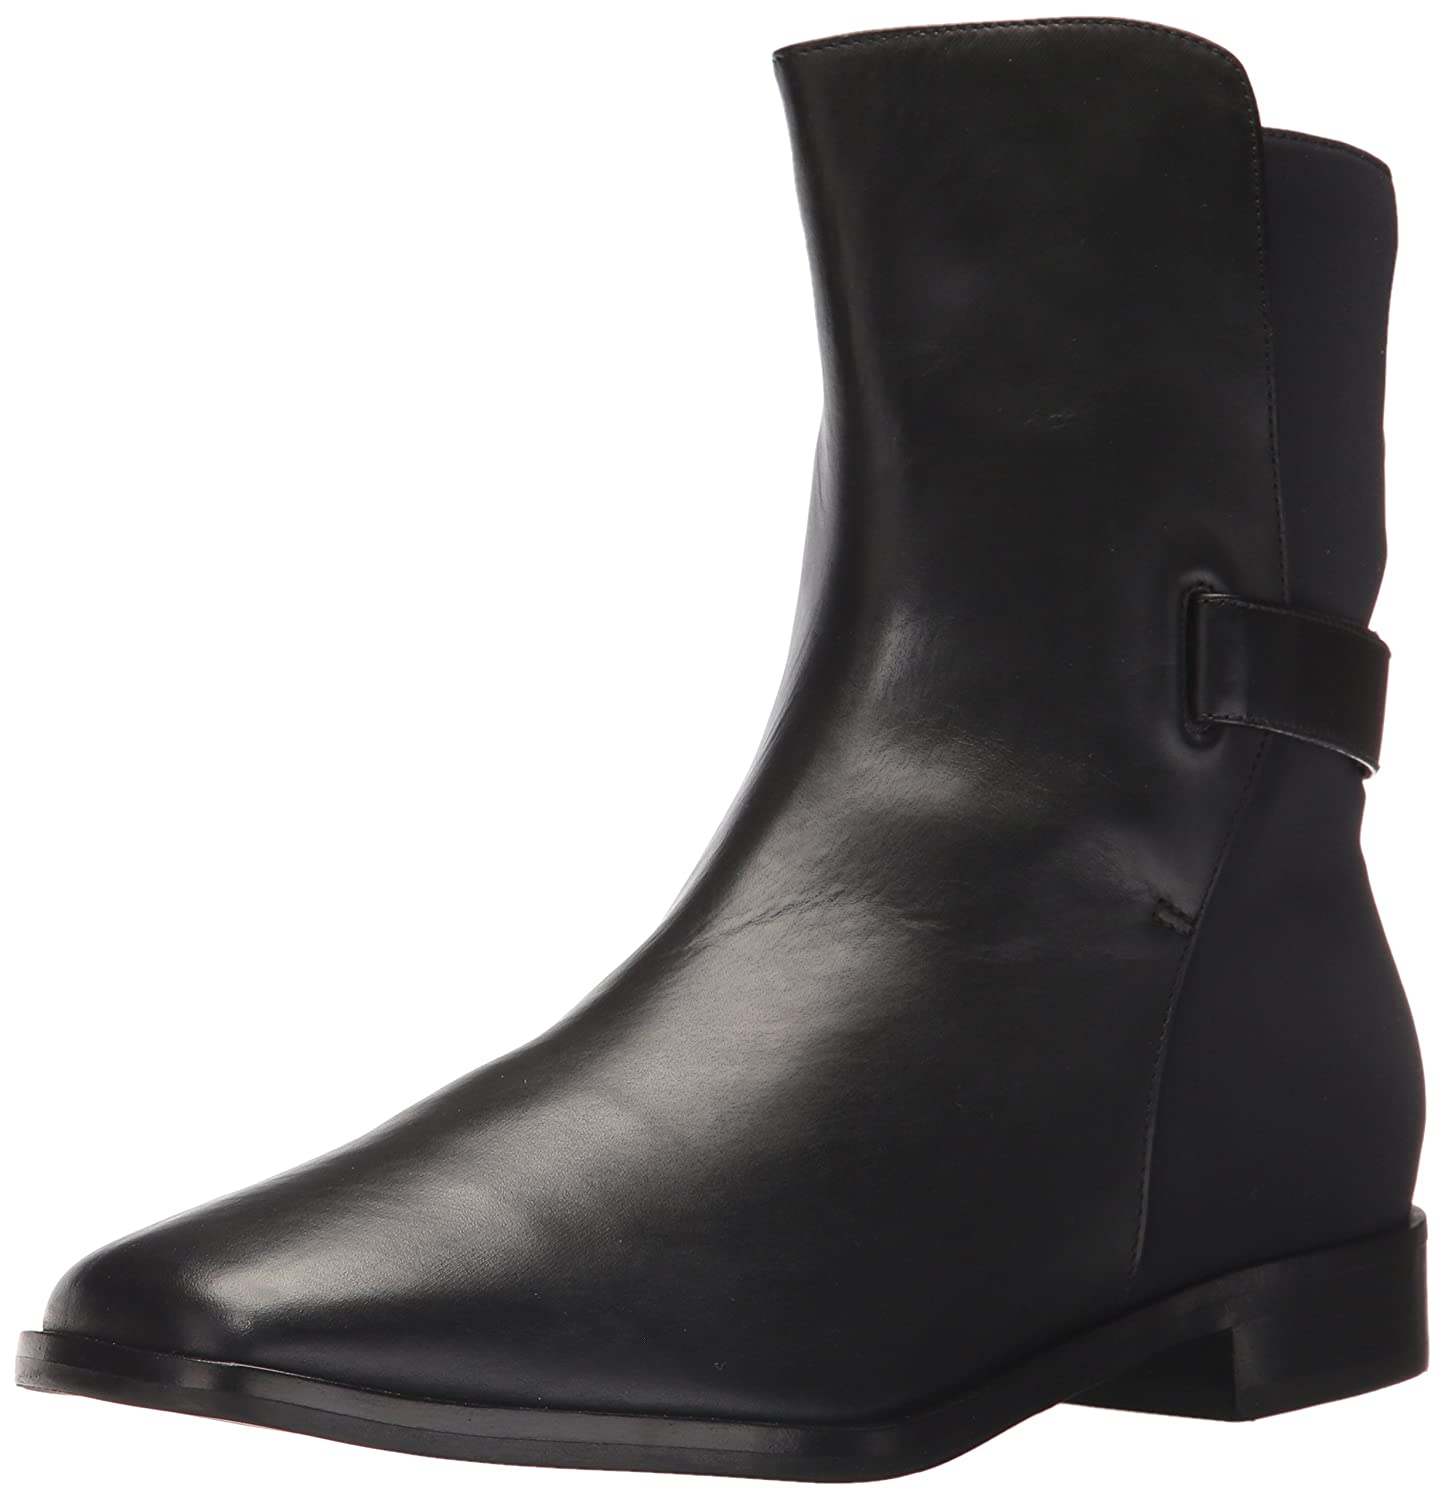 Via Spiga Women's Vaughan B(M) Ankle Boot B06XGTMR48 8.5 B(M) Vaughan US|Black Leather 63068b